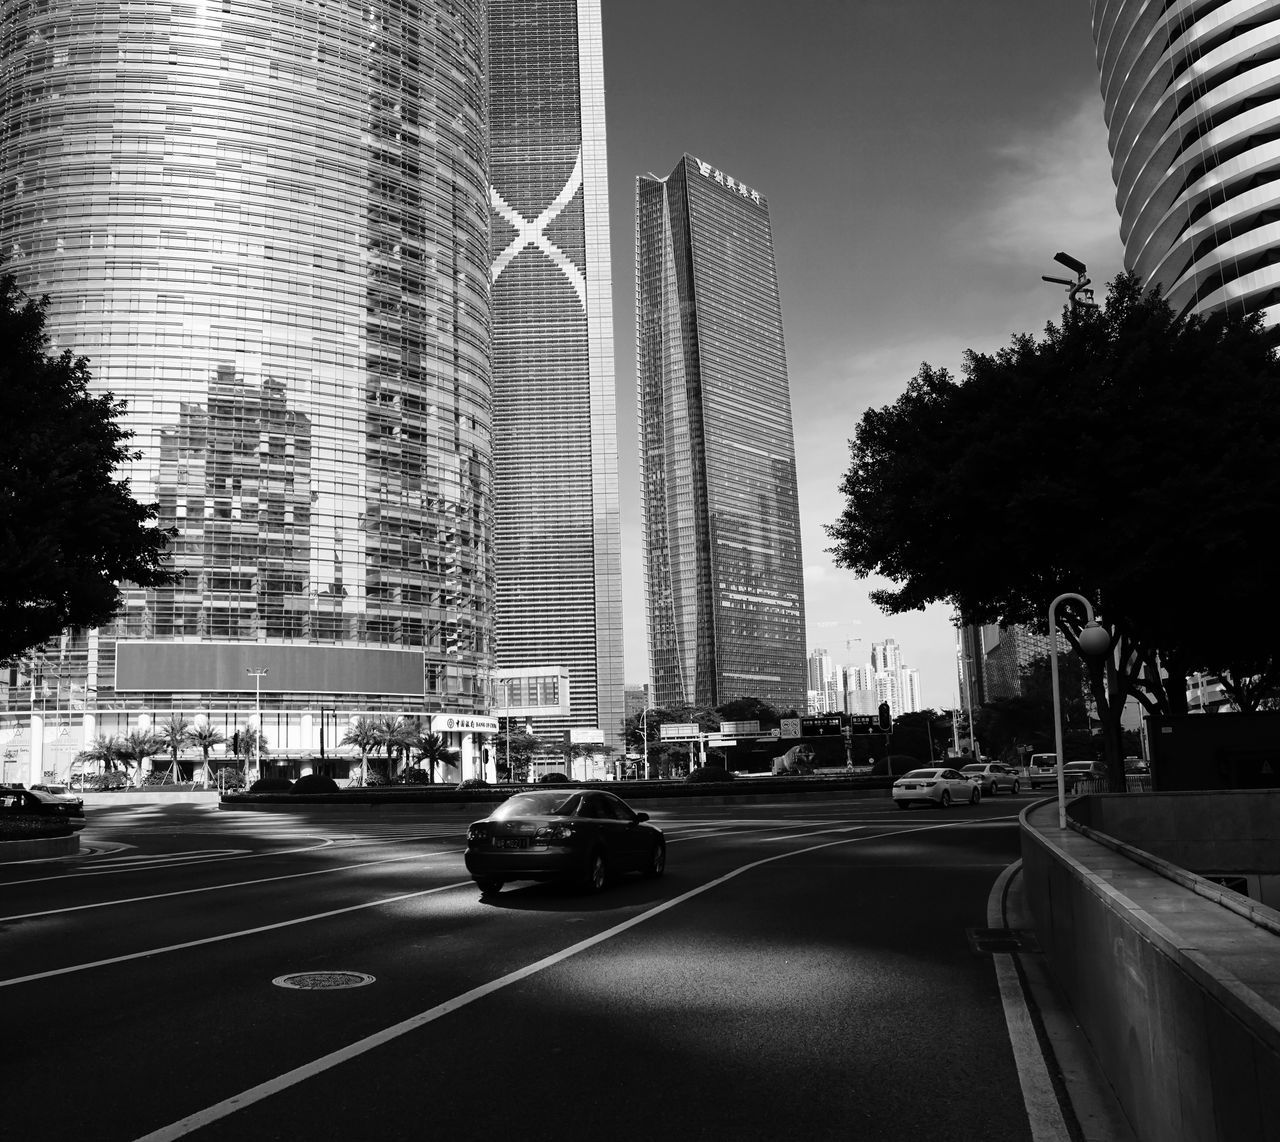 Zhujiang bouelvard City Building Exterior Car Built Structure Architecture Tree Street Road Transportation Land Vehicle Outdoors Skyscraper No People Day Guangzhou Zhujiang Town China Black And White